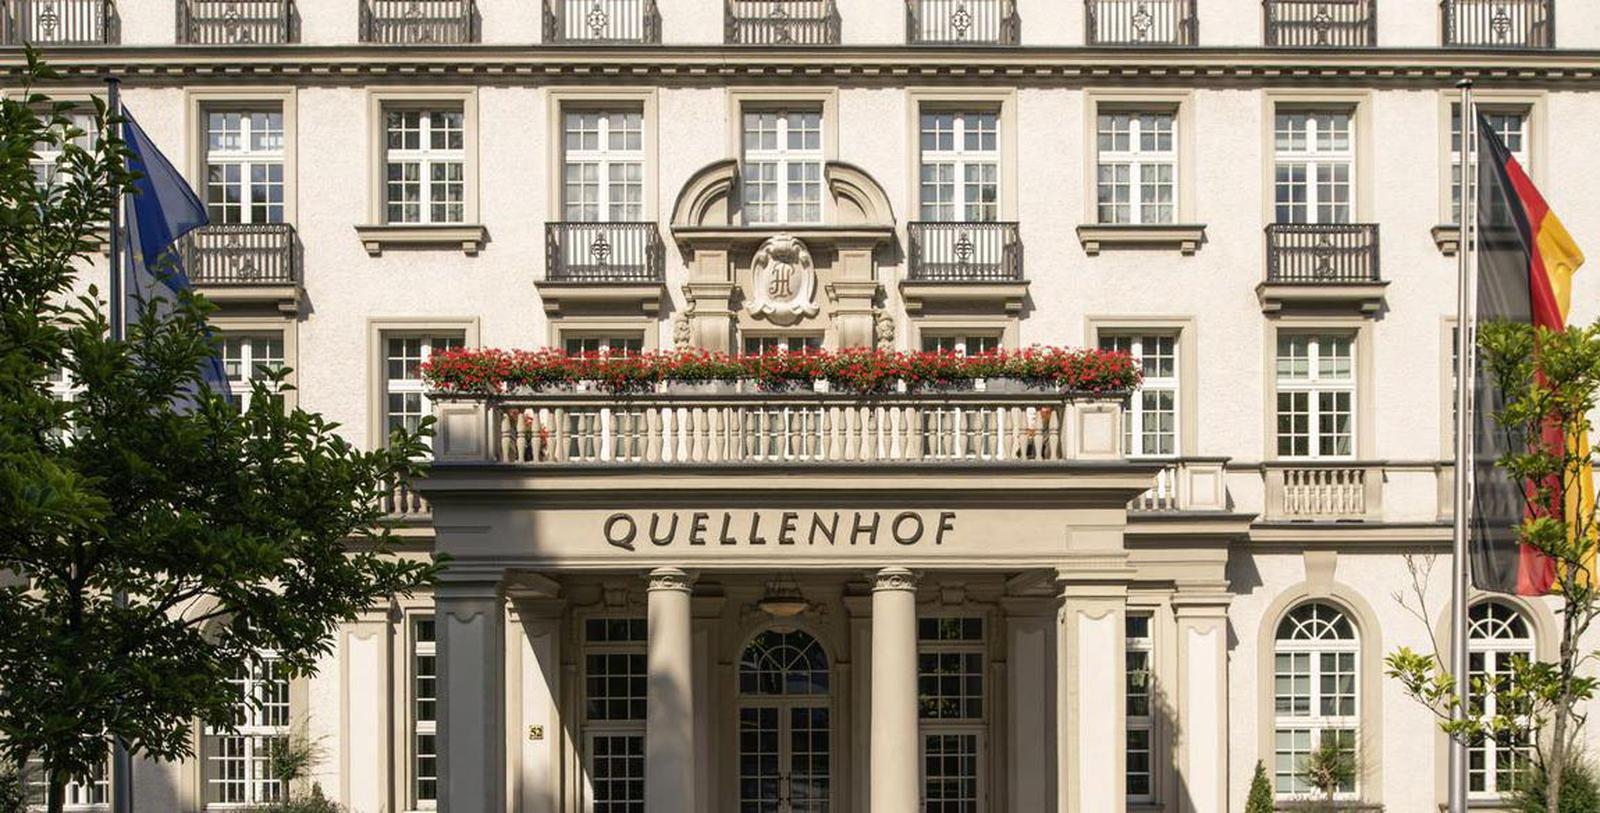 Image of Exterior, Hotel Pullman Aachen Quellenhof, Aachen, Germany, 1916, Member of Historic Hotels Worldwide, Discover